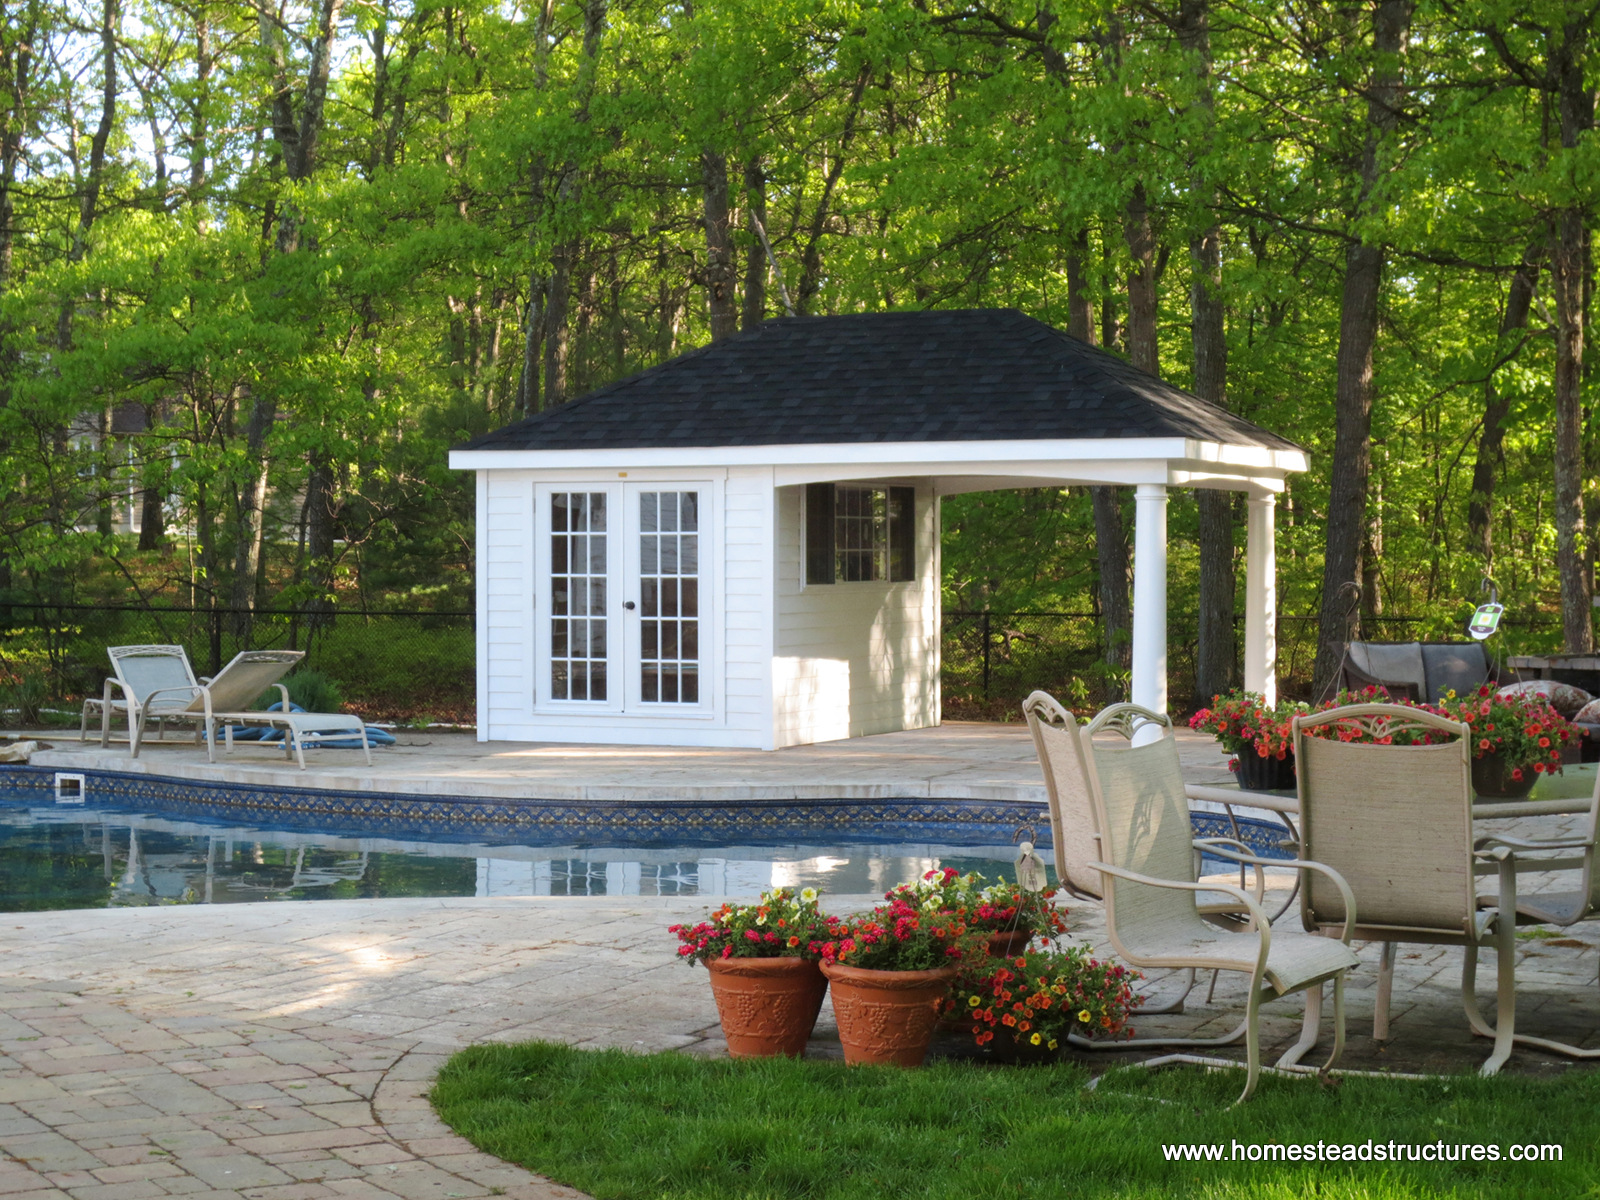 Pool houses homestead structures for Diy pool house plans